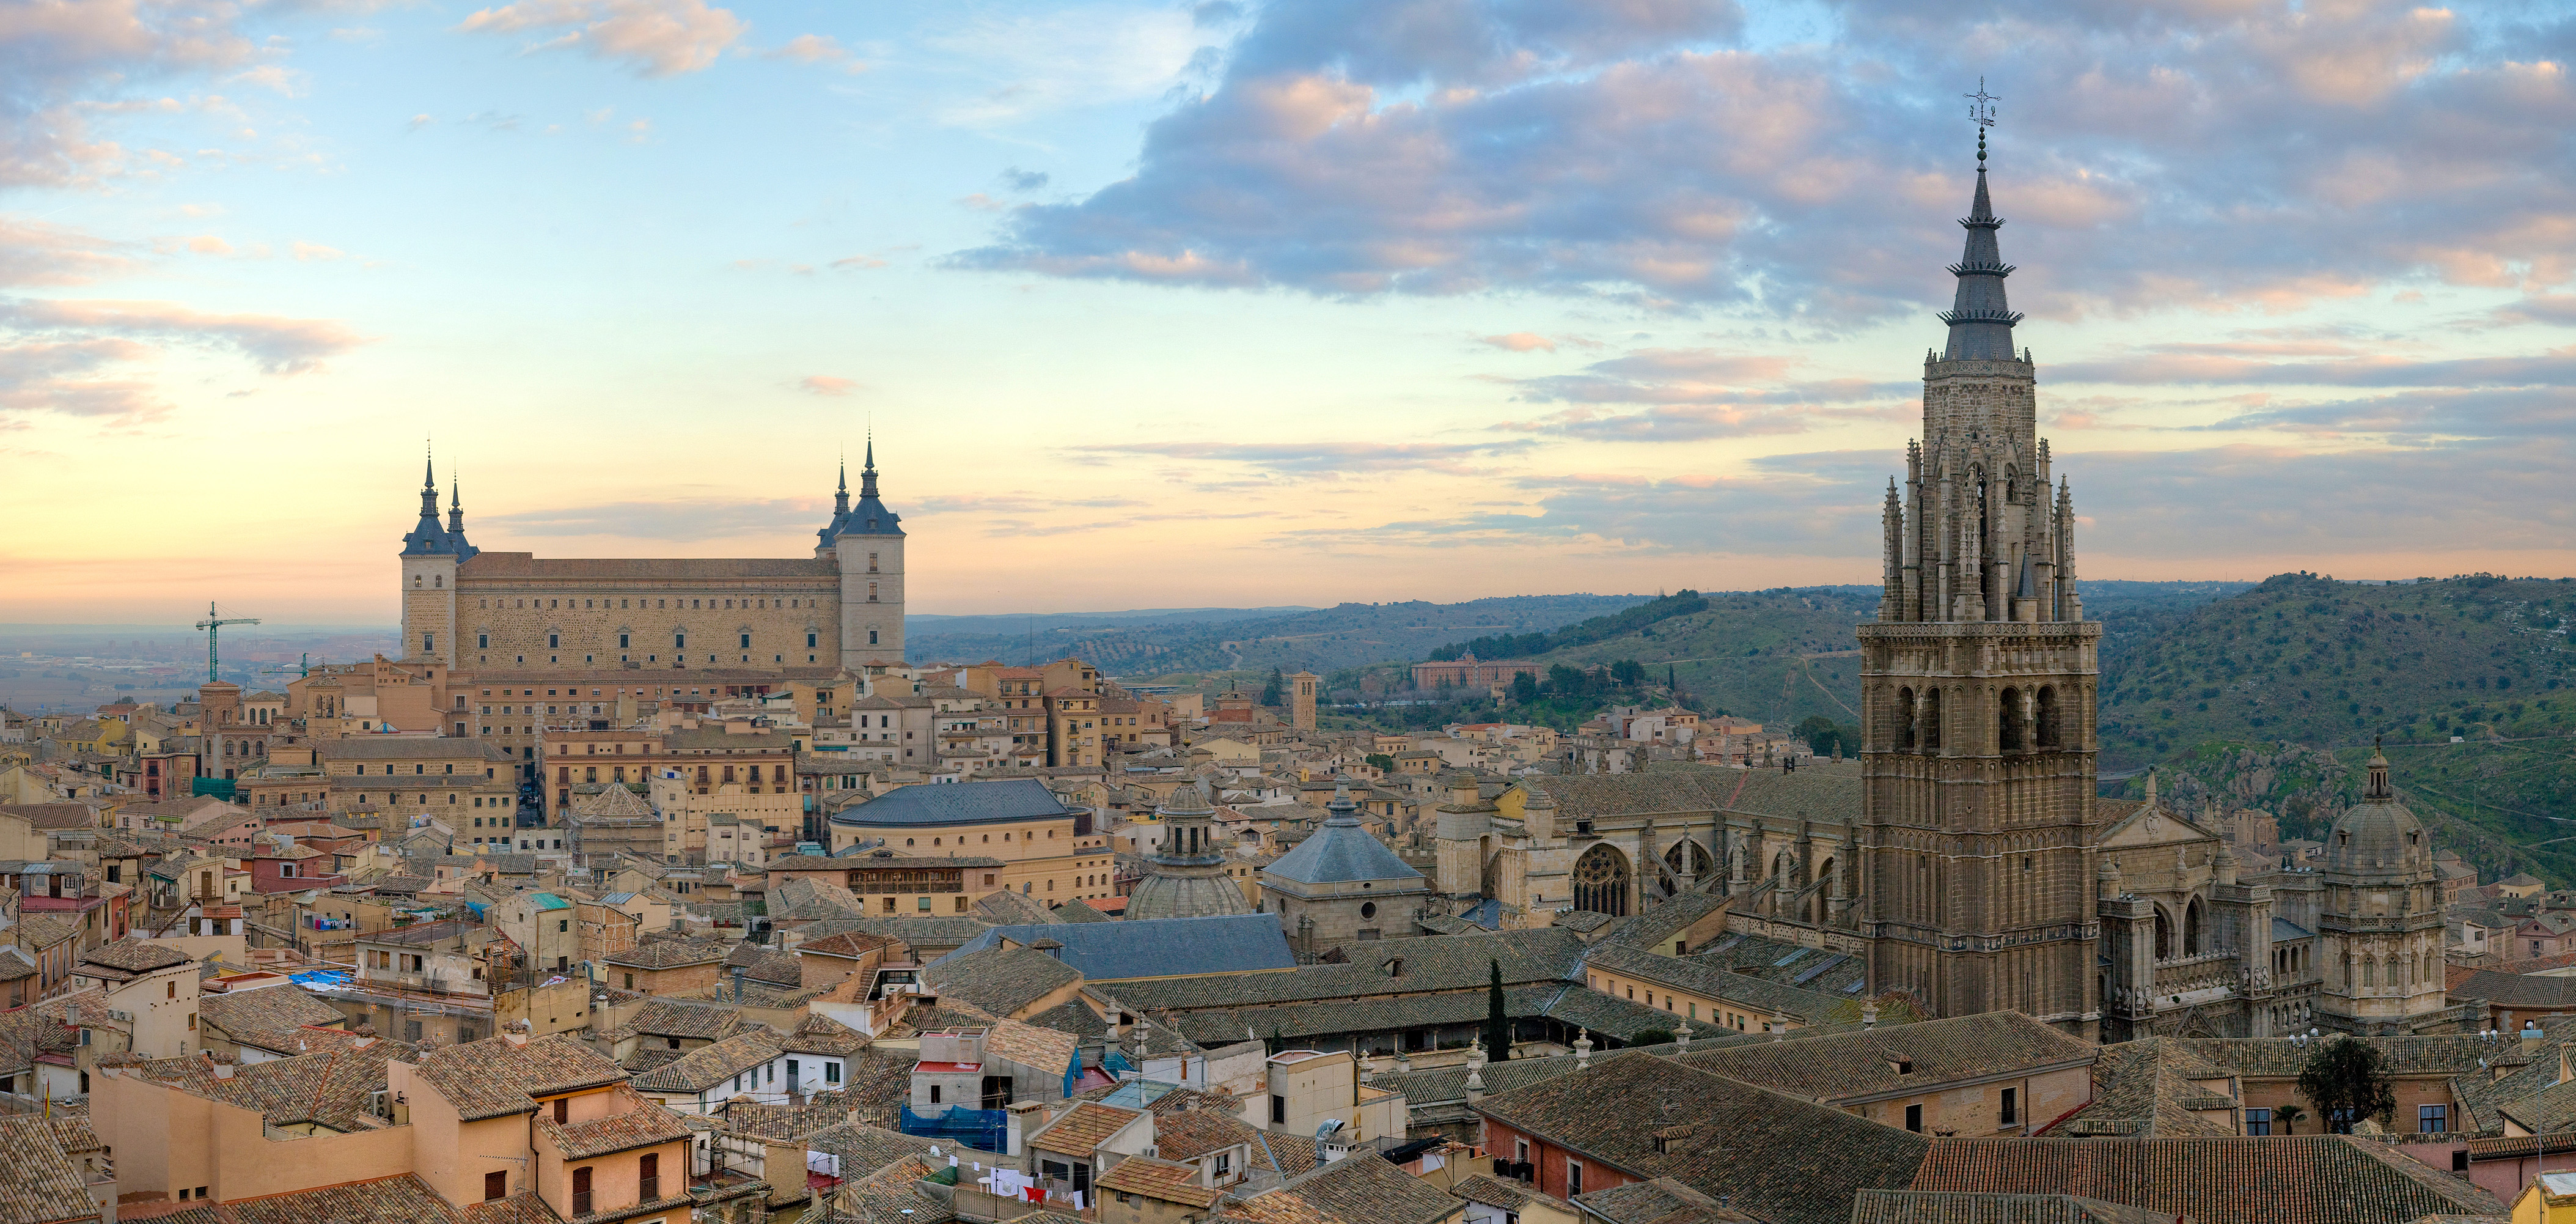 Toledo at sunset — The Alcázar on the left and Cathedral on the right.